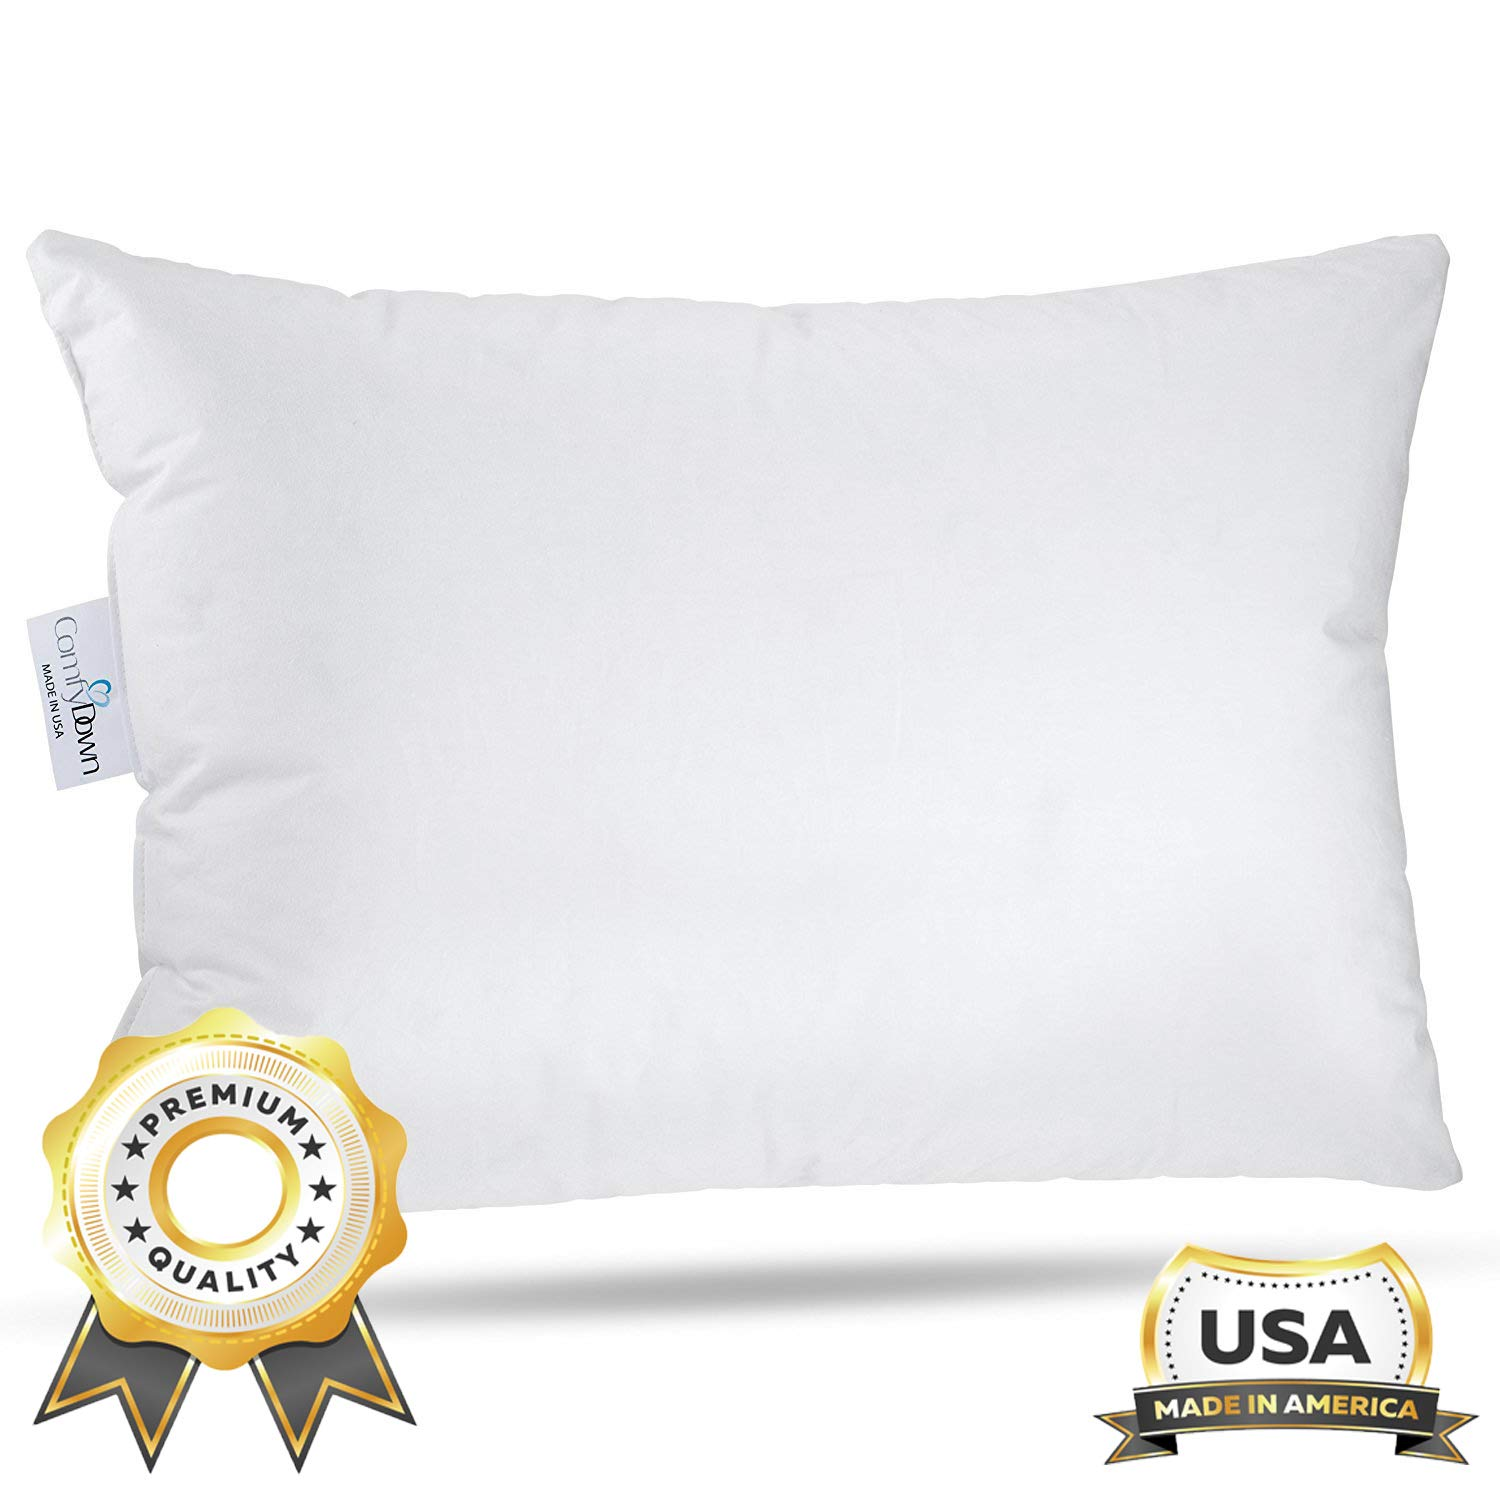 ComfyDown Travel Pillow - 800 Fill Power European Goose Down Pillow for Plane, Car & Home - 100% Hypoallergenic - Egyptian Cotton Cover - Made in USA - 12''x16'' by ComfyDown